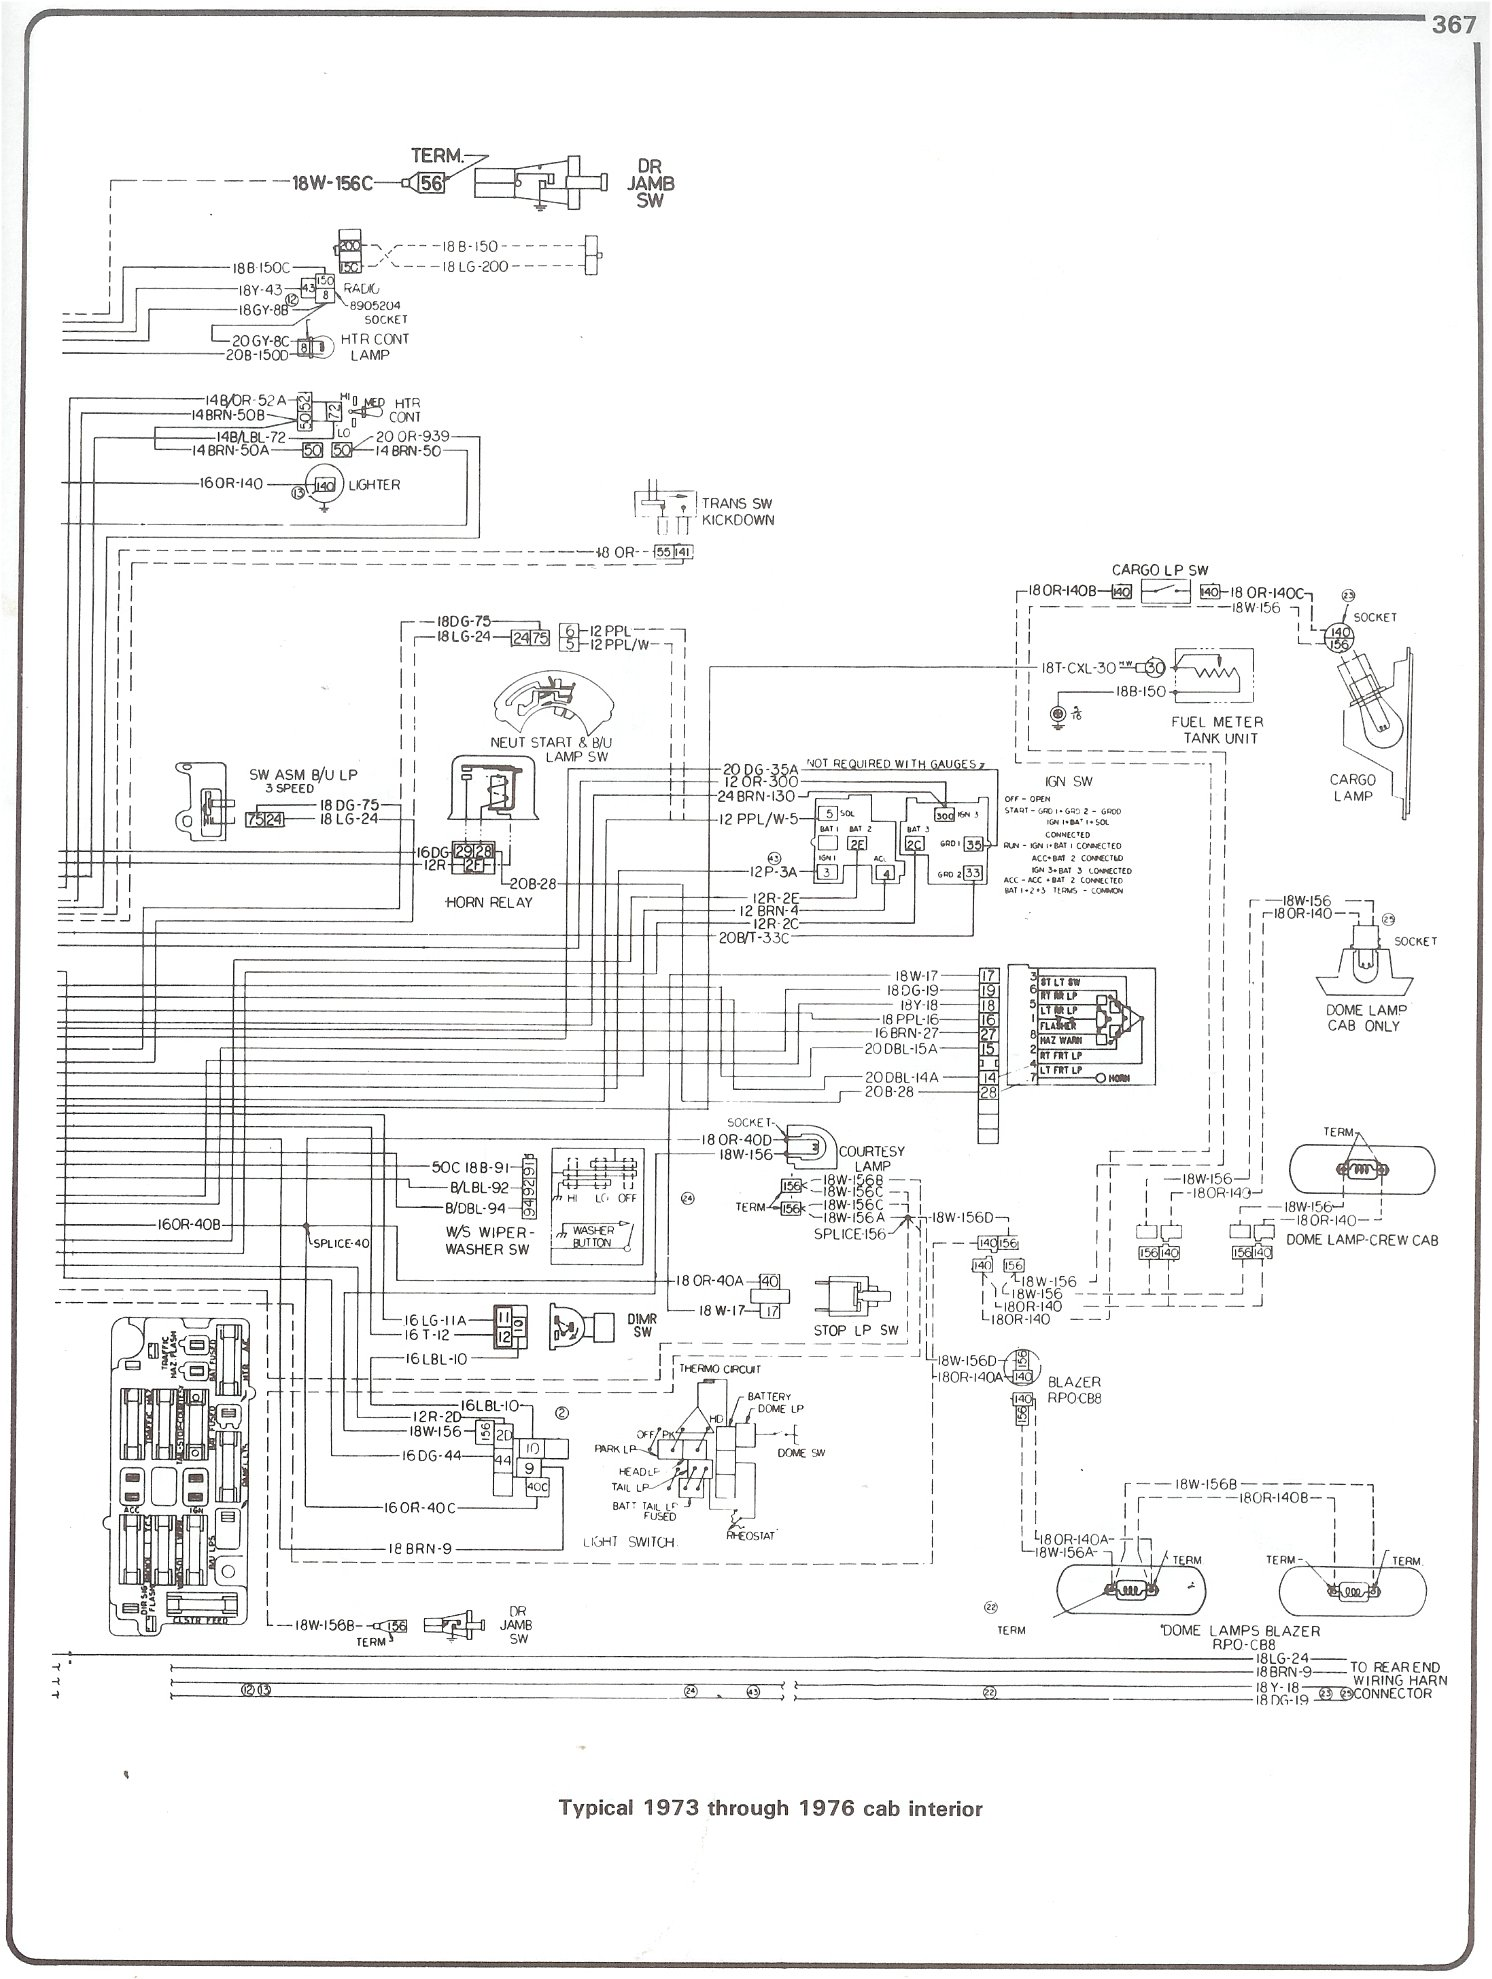 73 76_cab_inter complete 73 87 wiring diagrams W124 Instrument Cluster Diagram at n-0.co